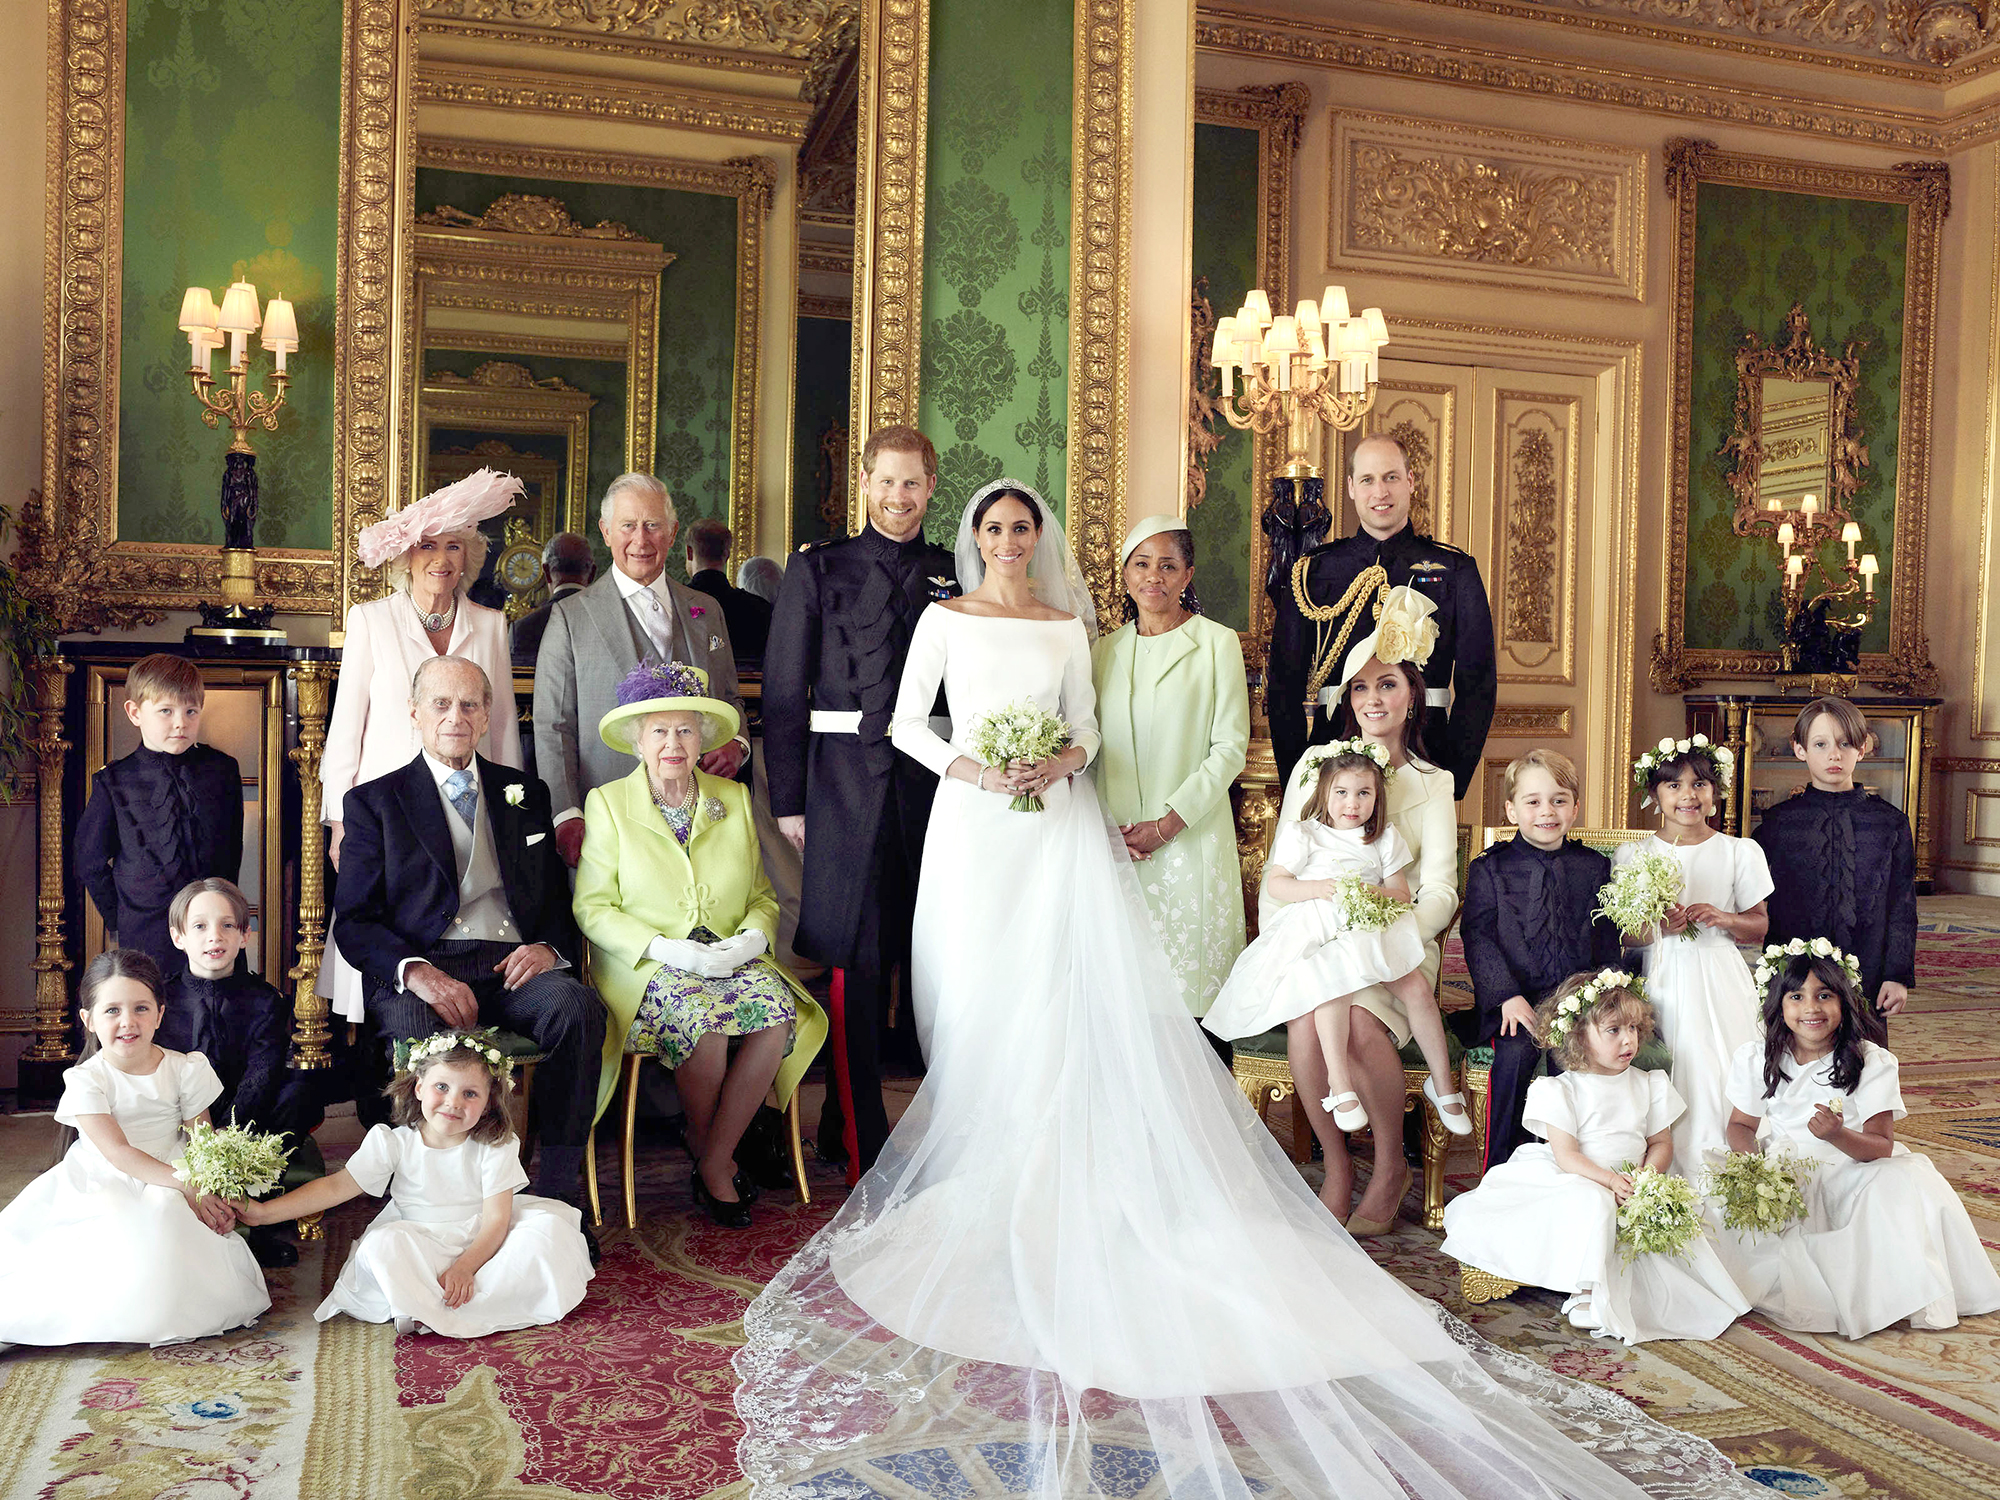 Royal Family Nicknames - USA Rights Only – Windsor, UK -20180519-Official Wedding Portraits of Prince Harry and Meghan Duchess of Sussex Released by the Palace NEWS EDITORIAL USE ONLY. NO COMMERCIAL USE.